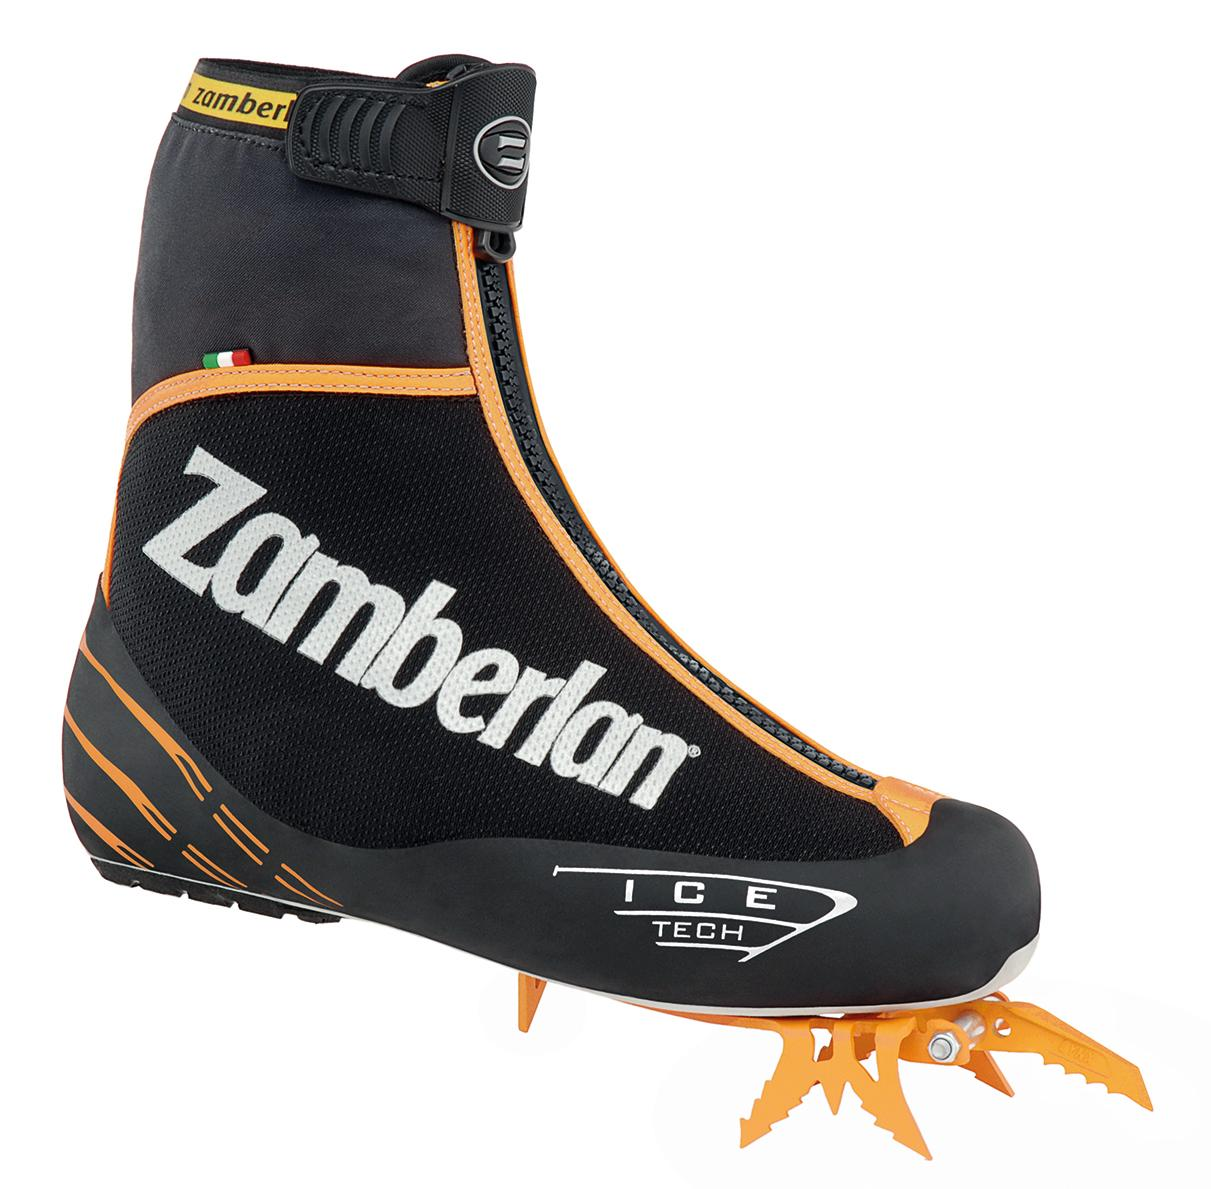 2000 ICE TECH EVO RR    -   Mountaineering  Boots   -   Black/Orange